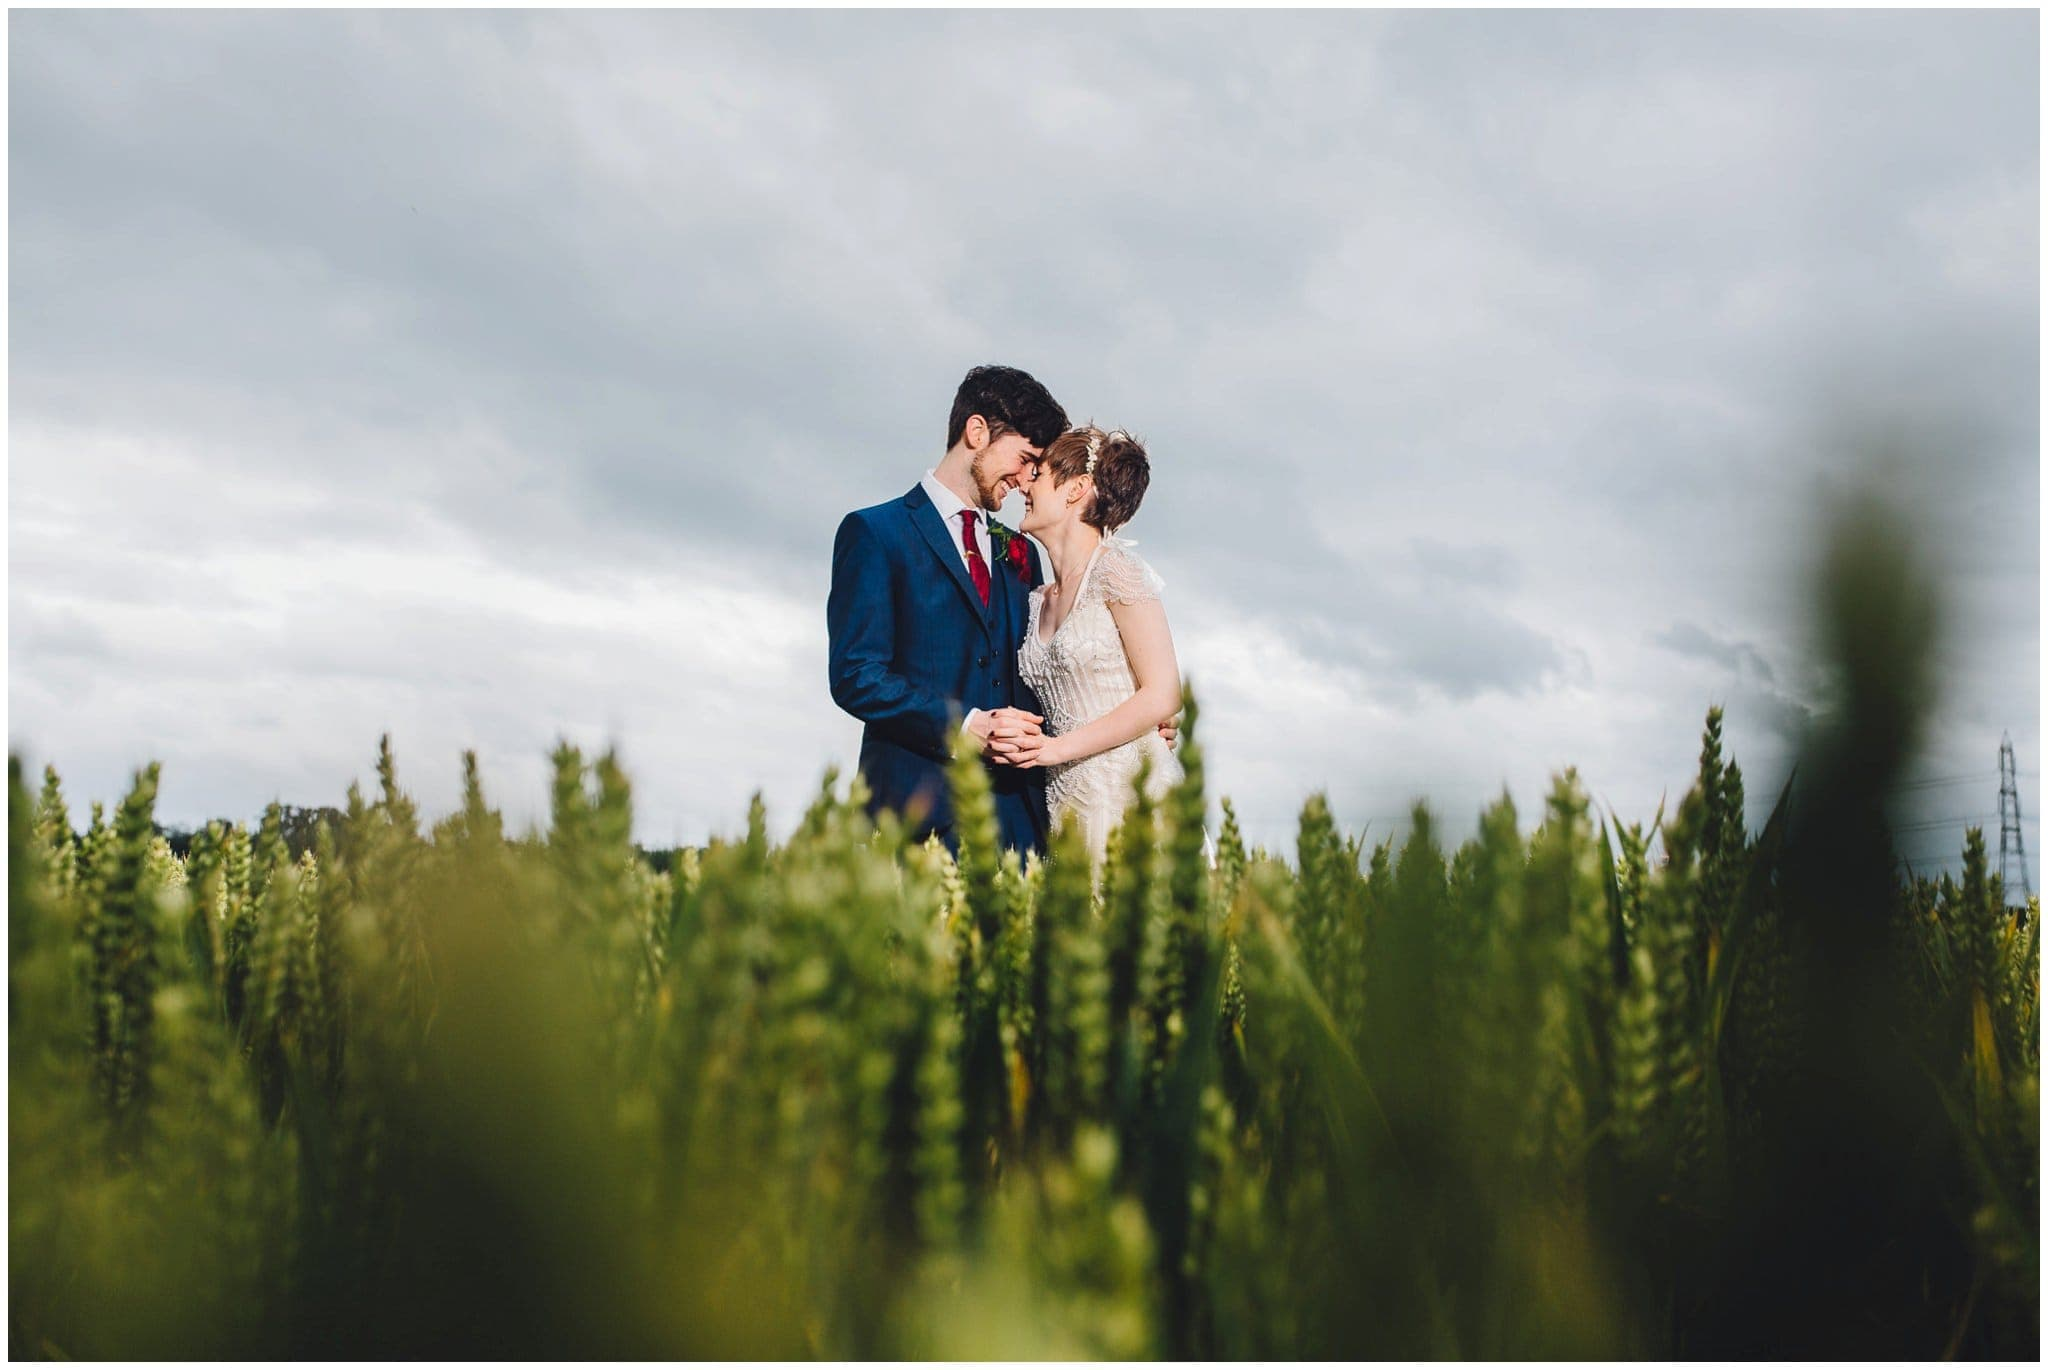 Shustoke Farm Barns Wedding Photographer – Tristan & Hannah